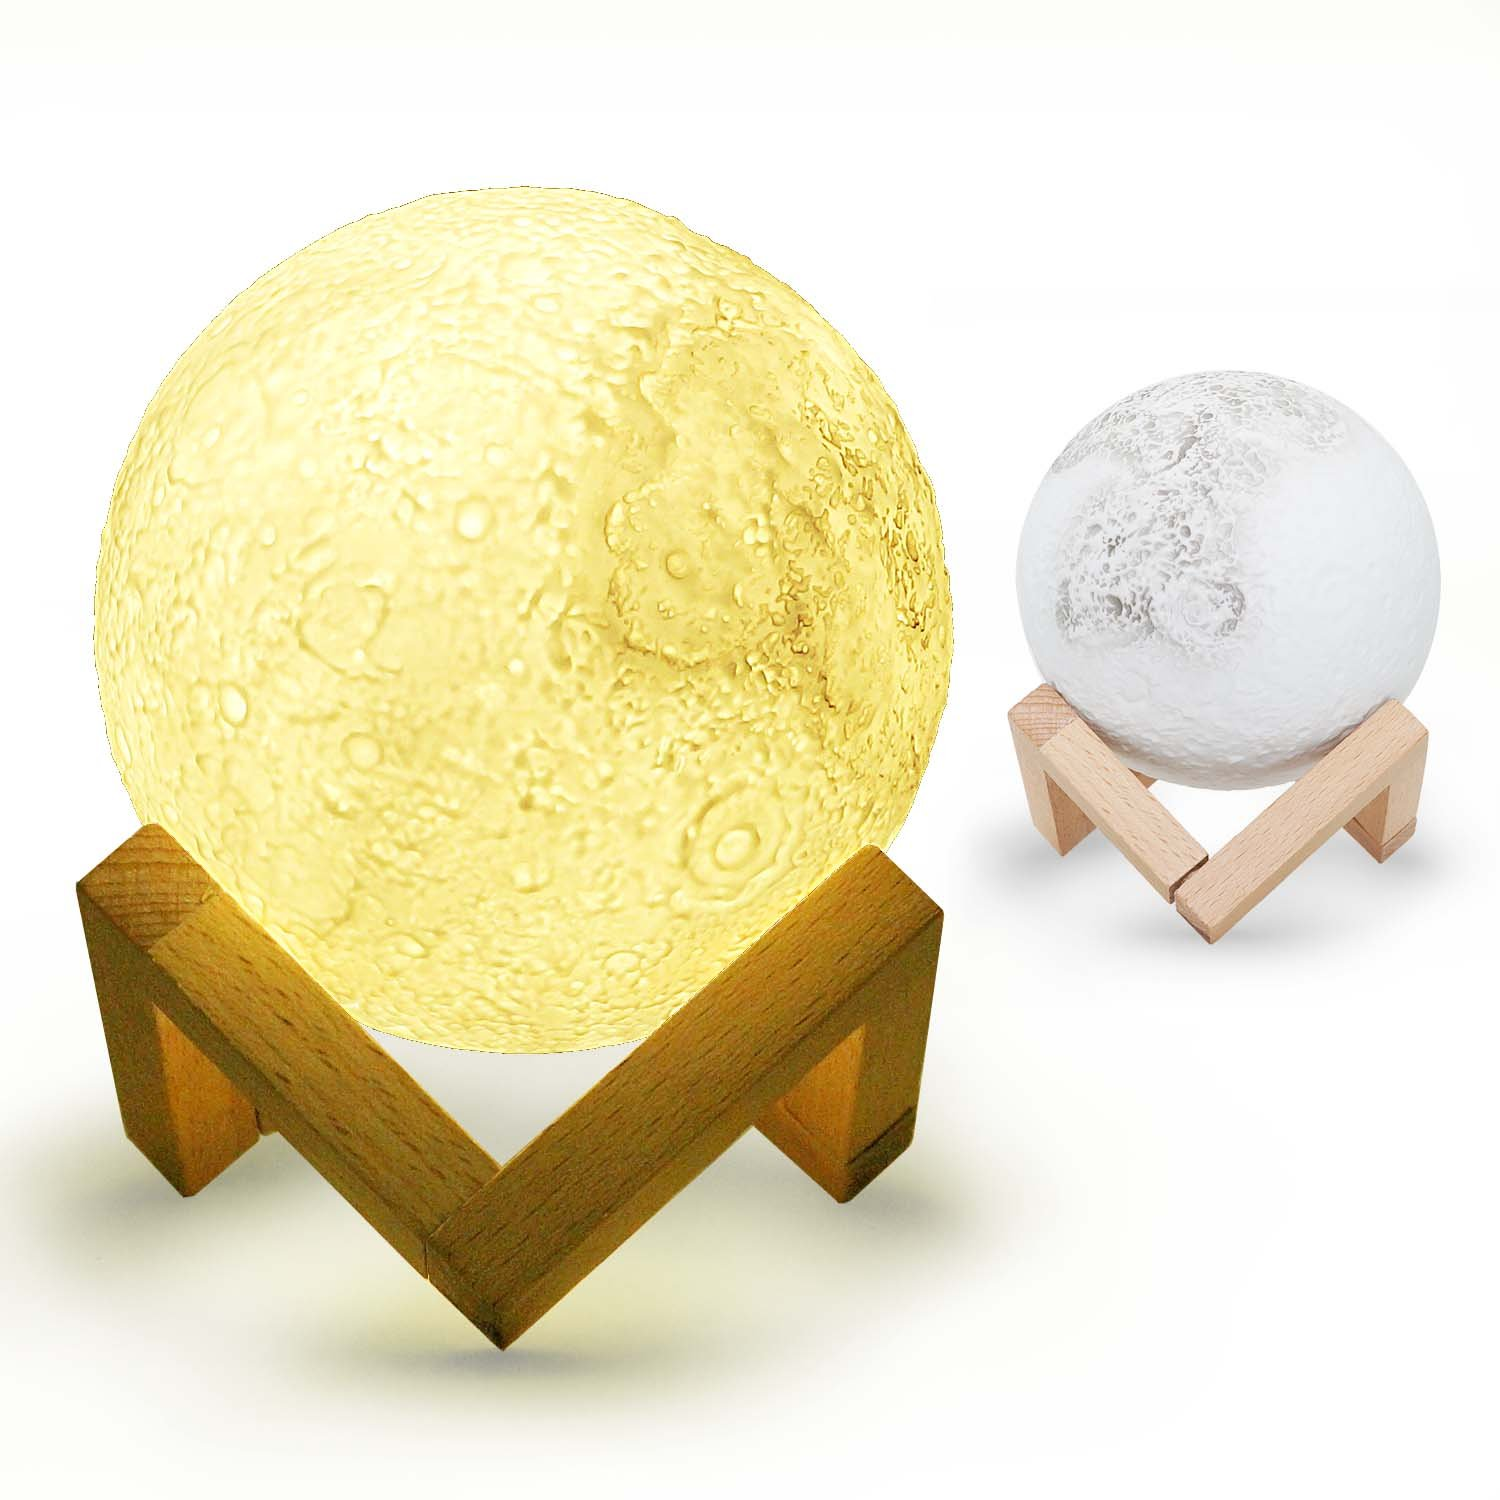 Moon Lamp for Gift, Abida Moon Light: Rechargeable 3D LED Glowing Baby Night Light, Shockproof and Durable, Adjustable Brightness and Colors, USB Charging Dimming Bedroom Lamps